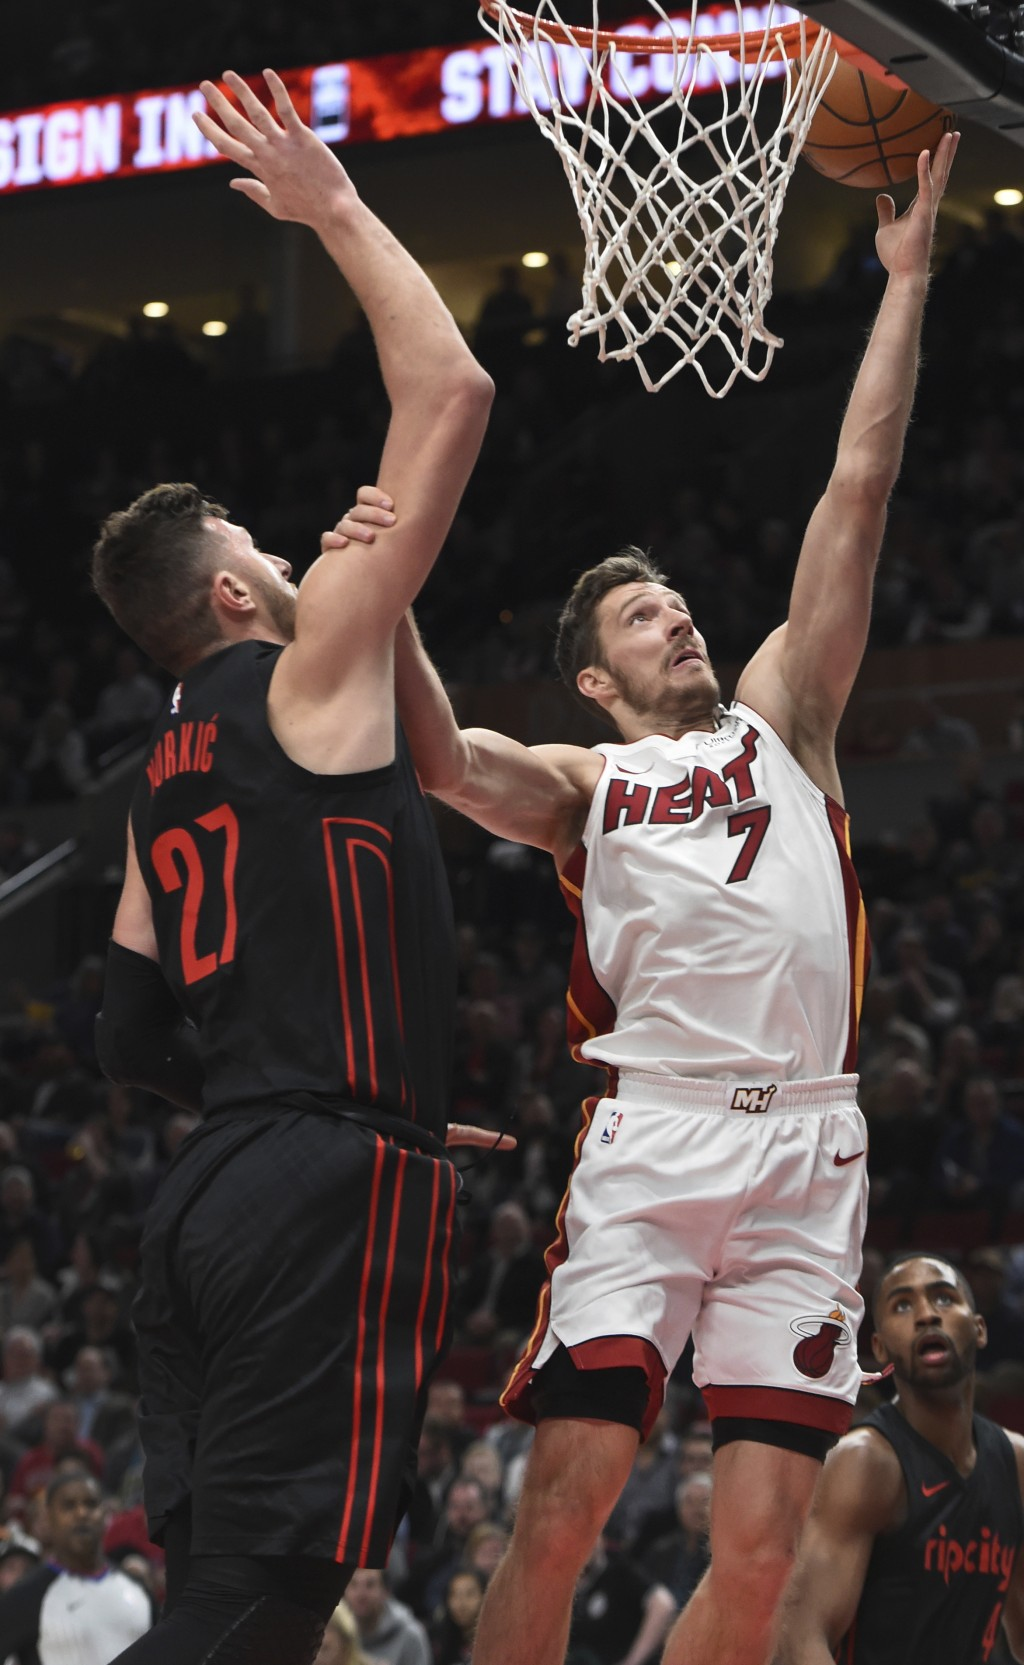 Miami Heat guard Goran Dragic (7) drives to the basket against Portland Trail Blazers center Jusuf Nurkic during the first half of an NBA basketball g